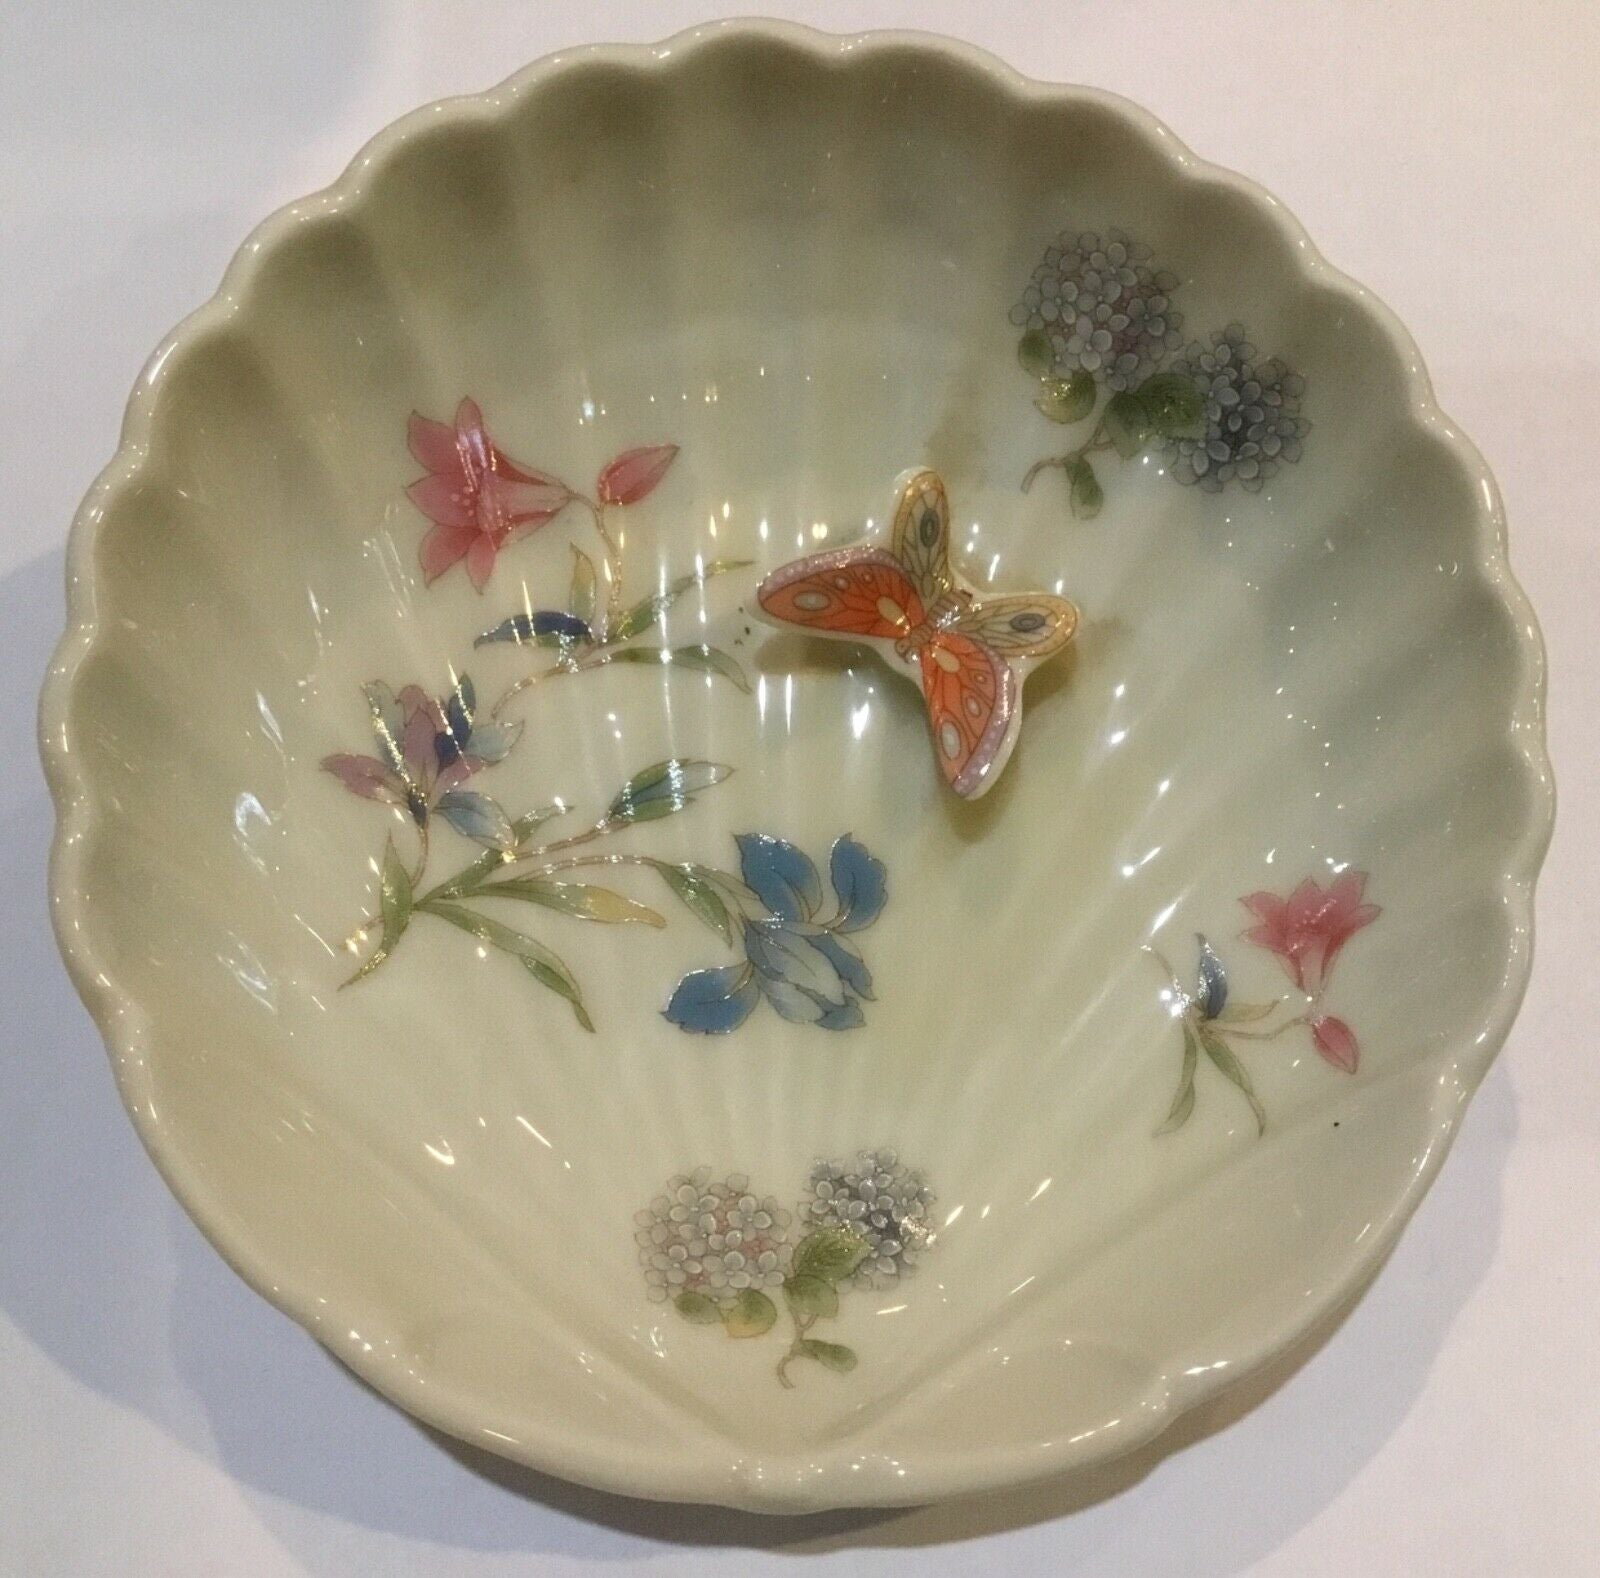 PORCELAIN SEASHELL SHAPED BOWL WITH FLORAL DESIGN AND RAISED BUTTERFLY